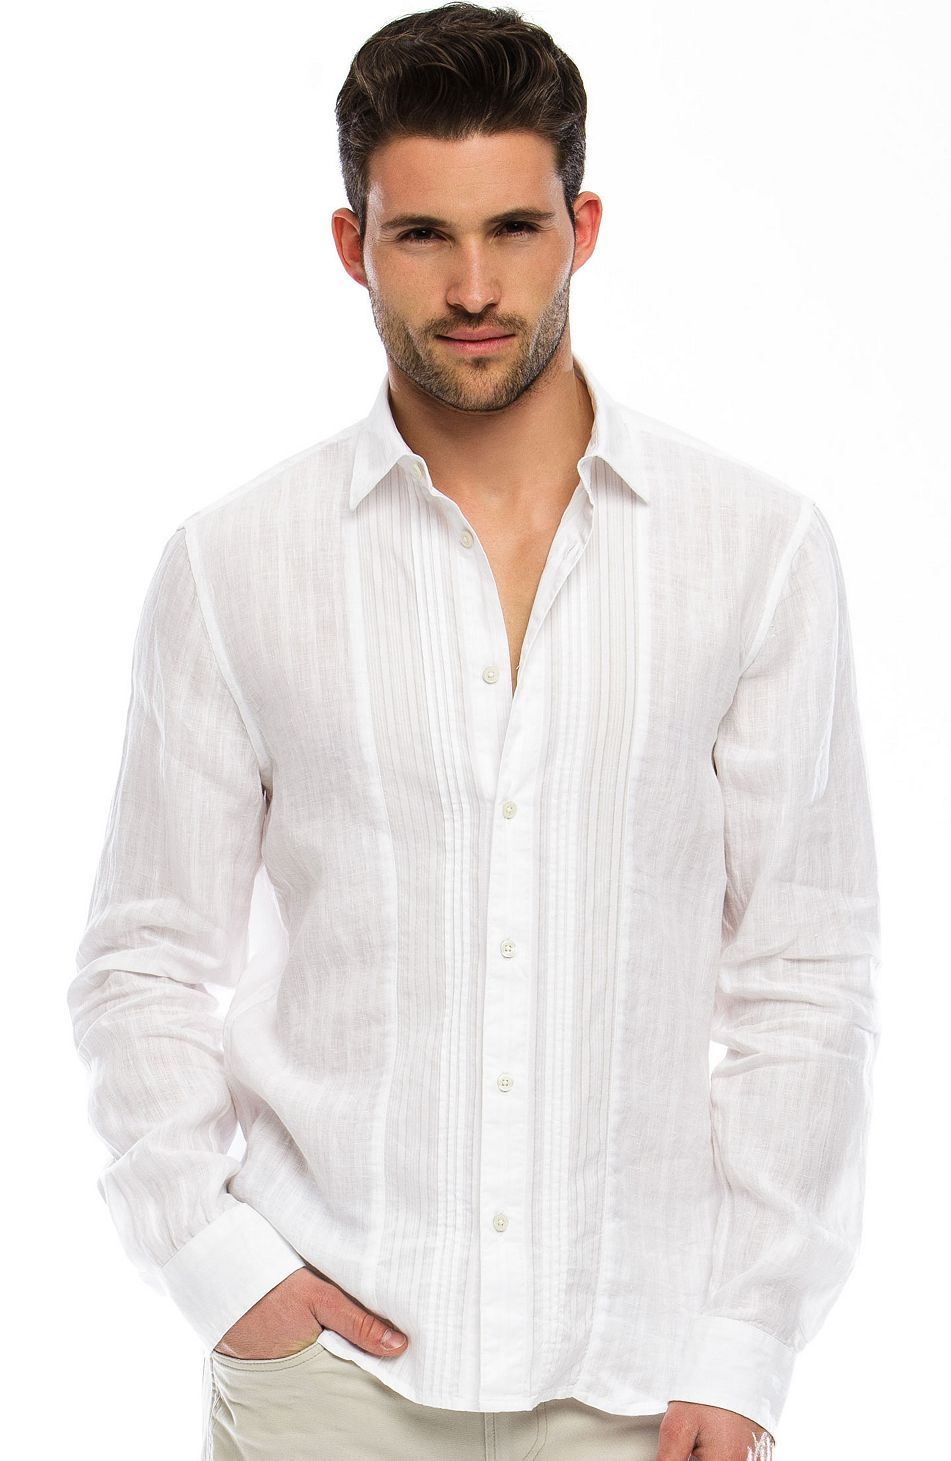 fba0cbaed0 Linen Tuxedo Shirt - Dress Shirts - Shirts - Mens - Armani Exchange Might  as well pick out something for the groom too